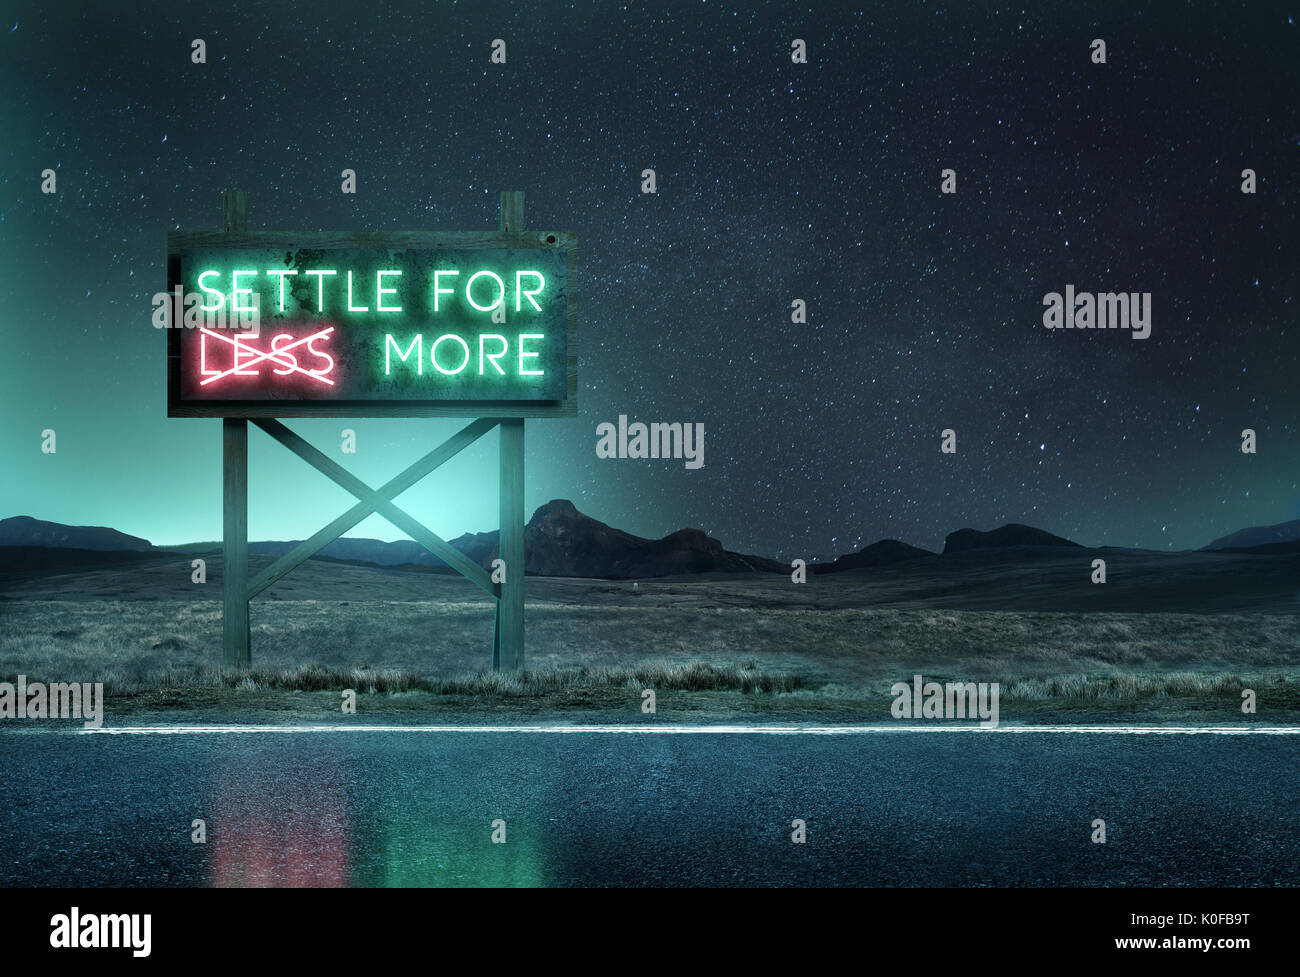 An old neon sign at night along a roadside with the message 'settle for more'. Mixed media illustration. - Stock Image